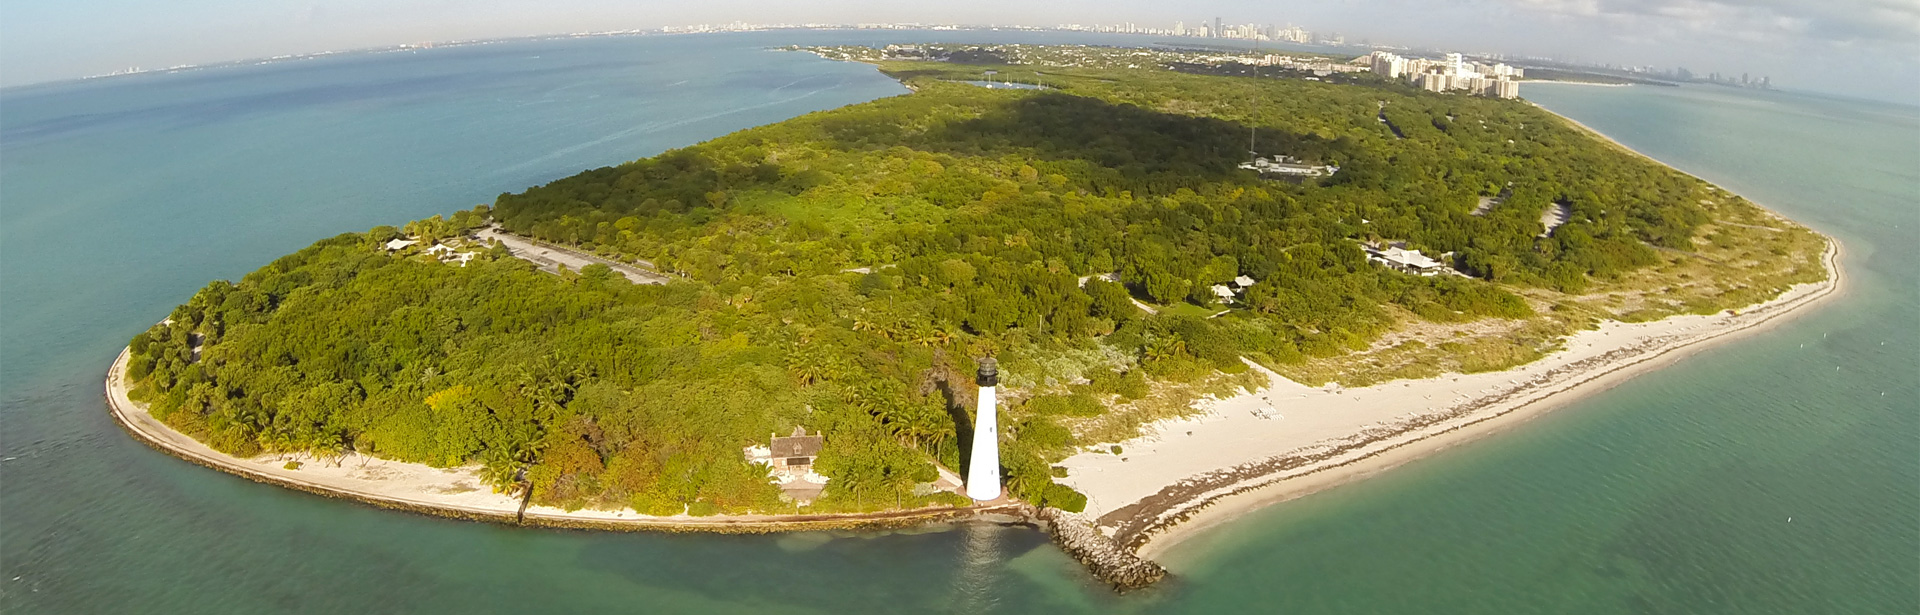 Key Biscayne View